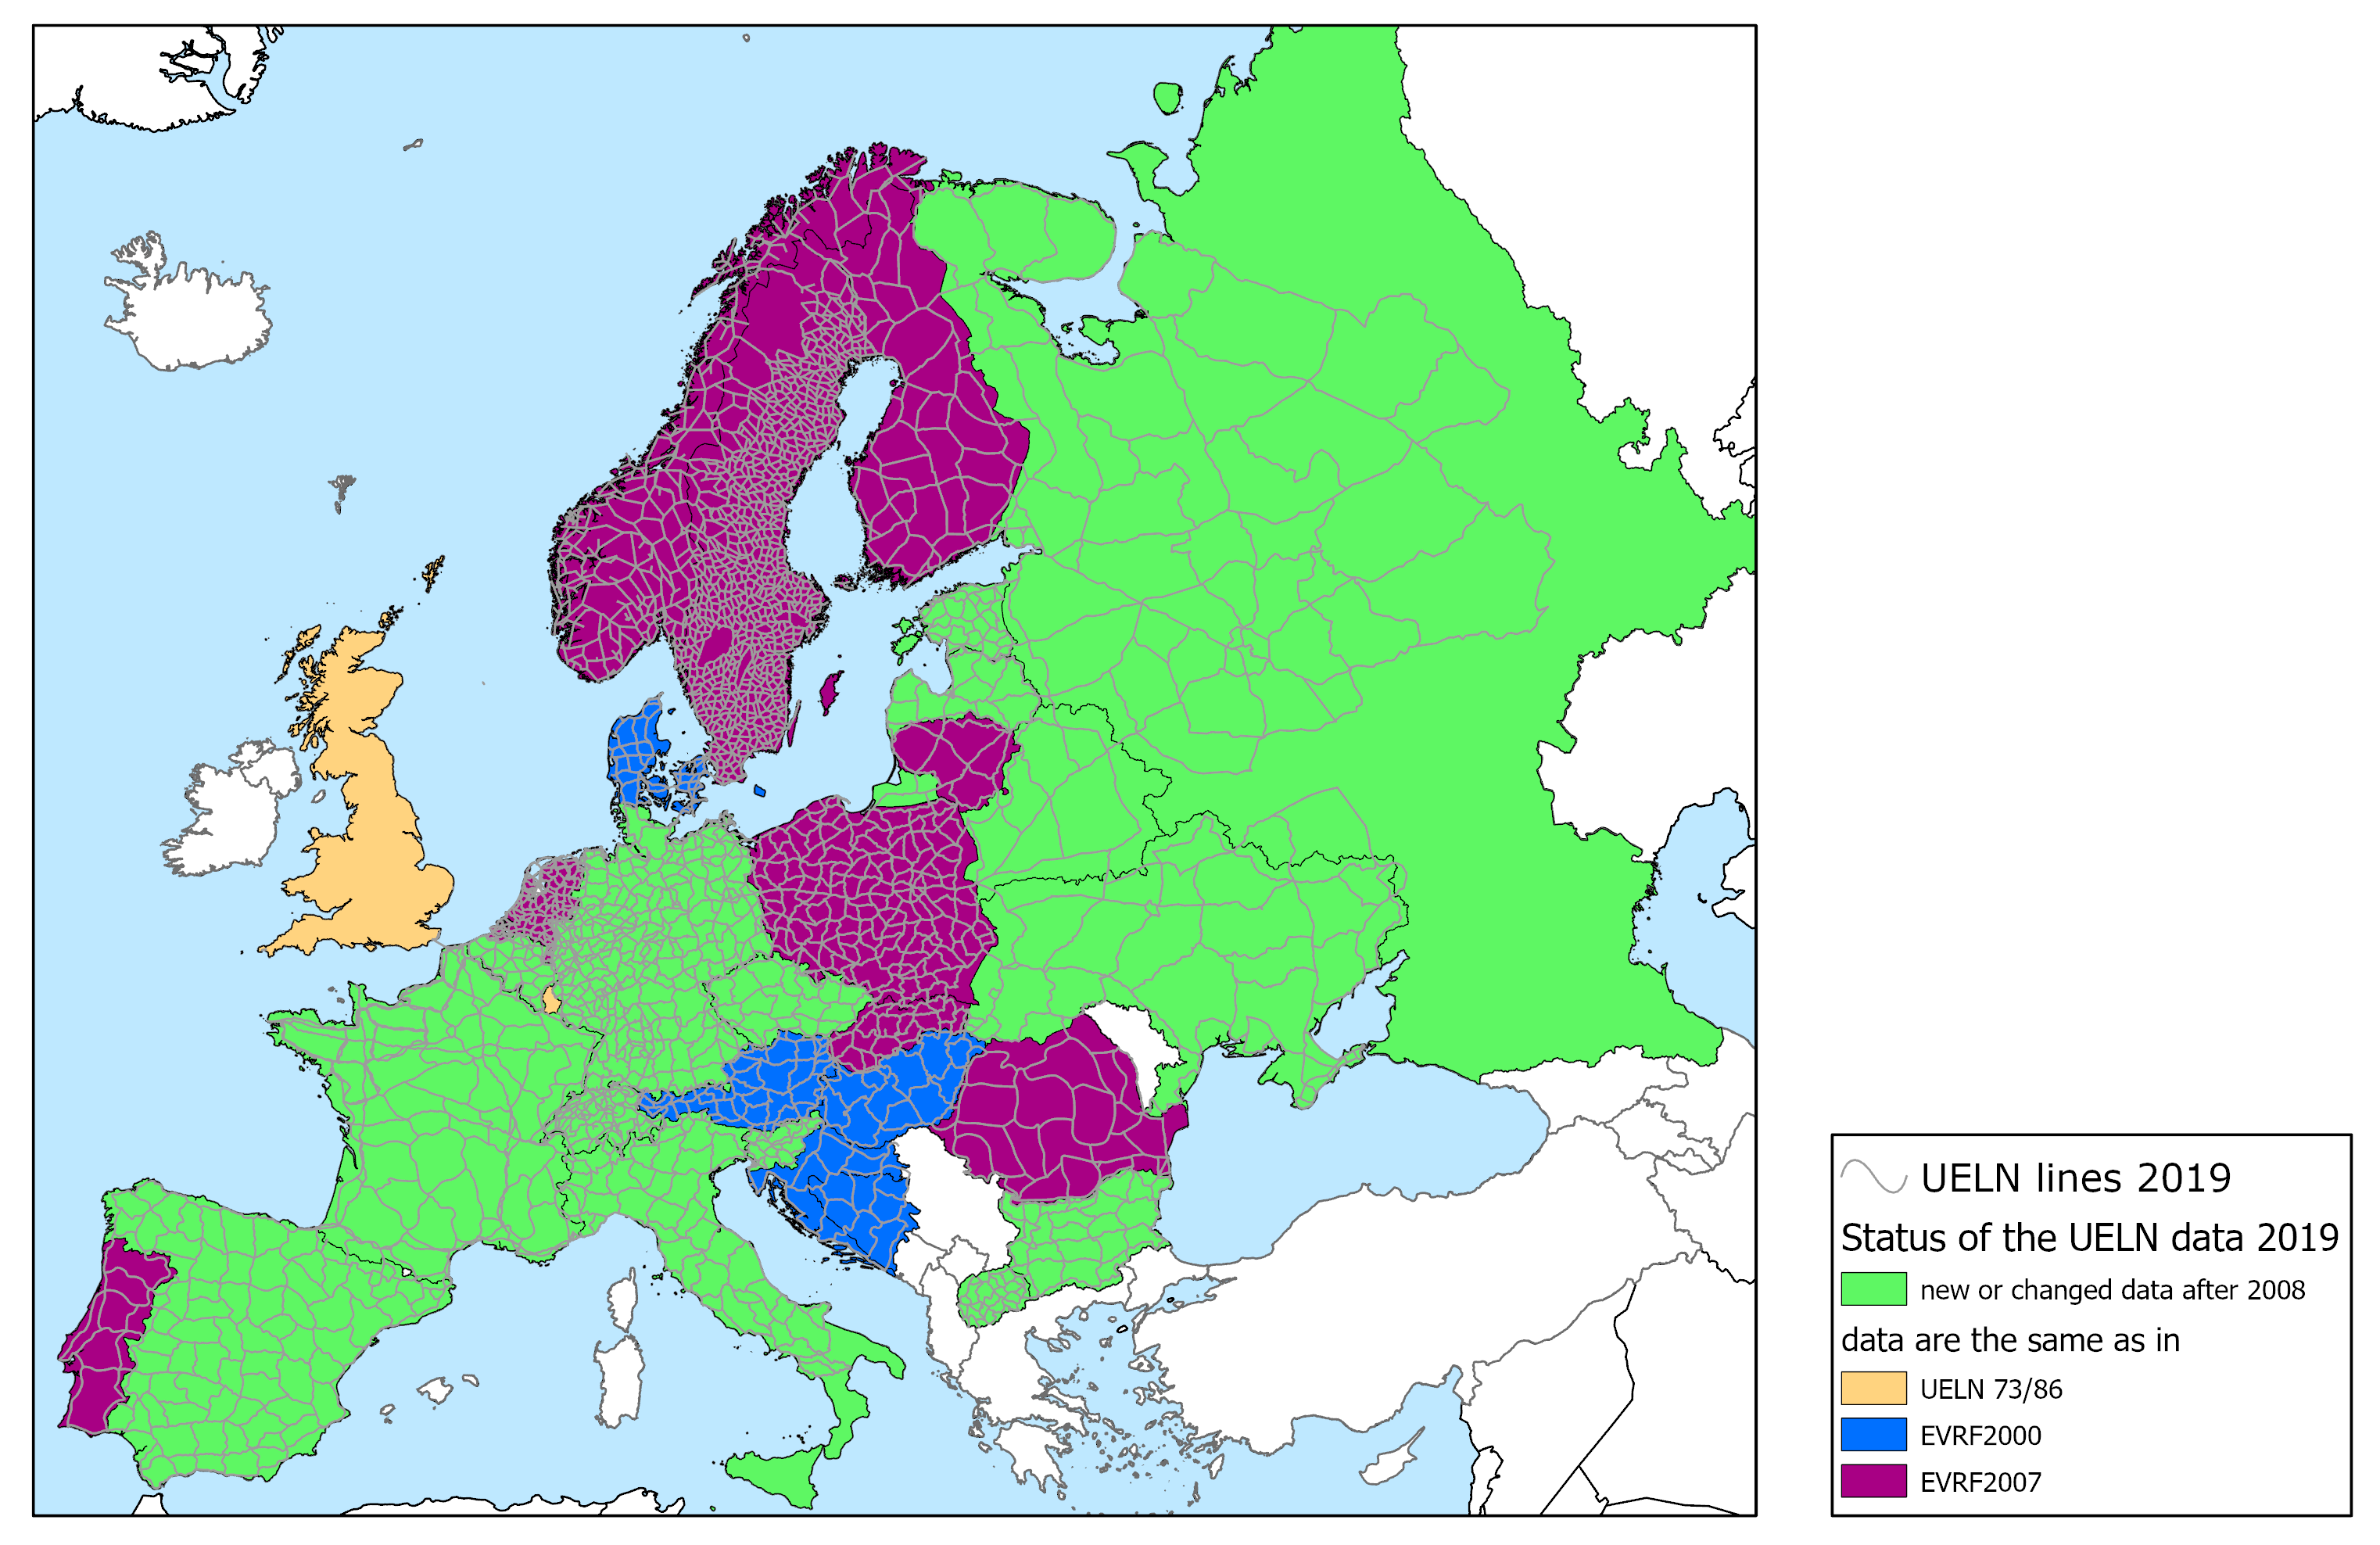 Picture shows in a map the status of the UELN data 2019